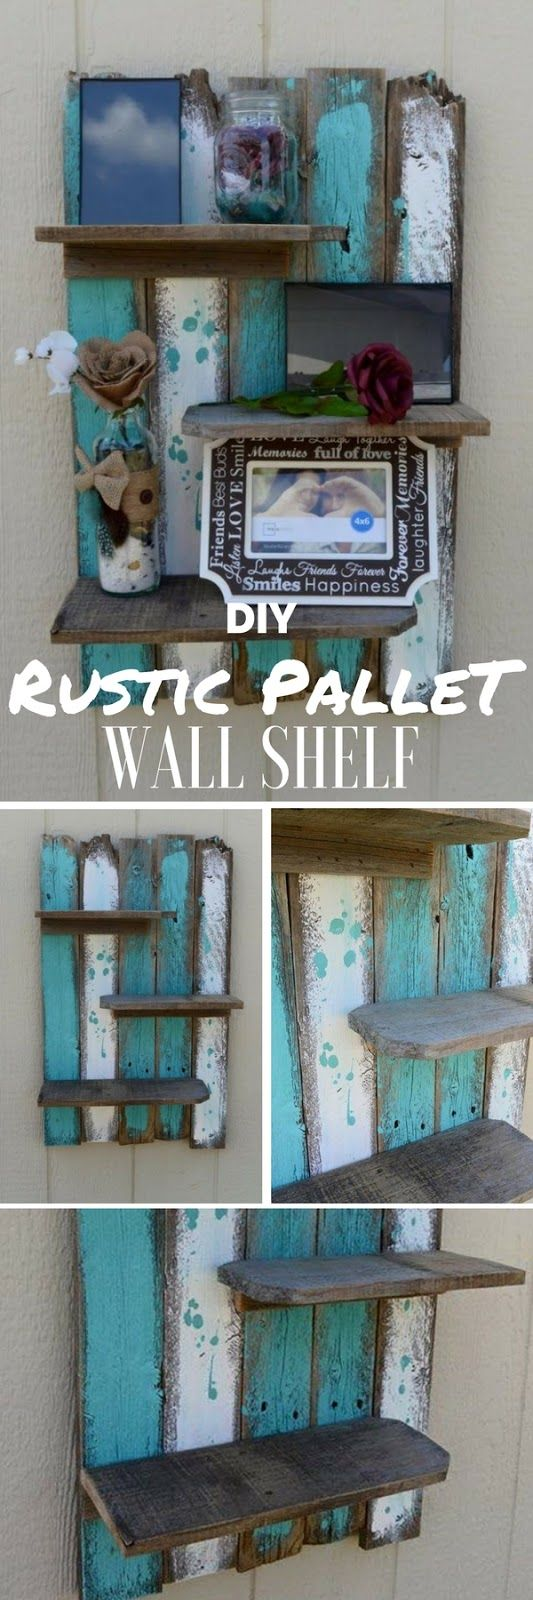 room decor, diy decor, diy room decor, diy, decor, crafts, do it yourself, upcycle projects, recycle projects